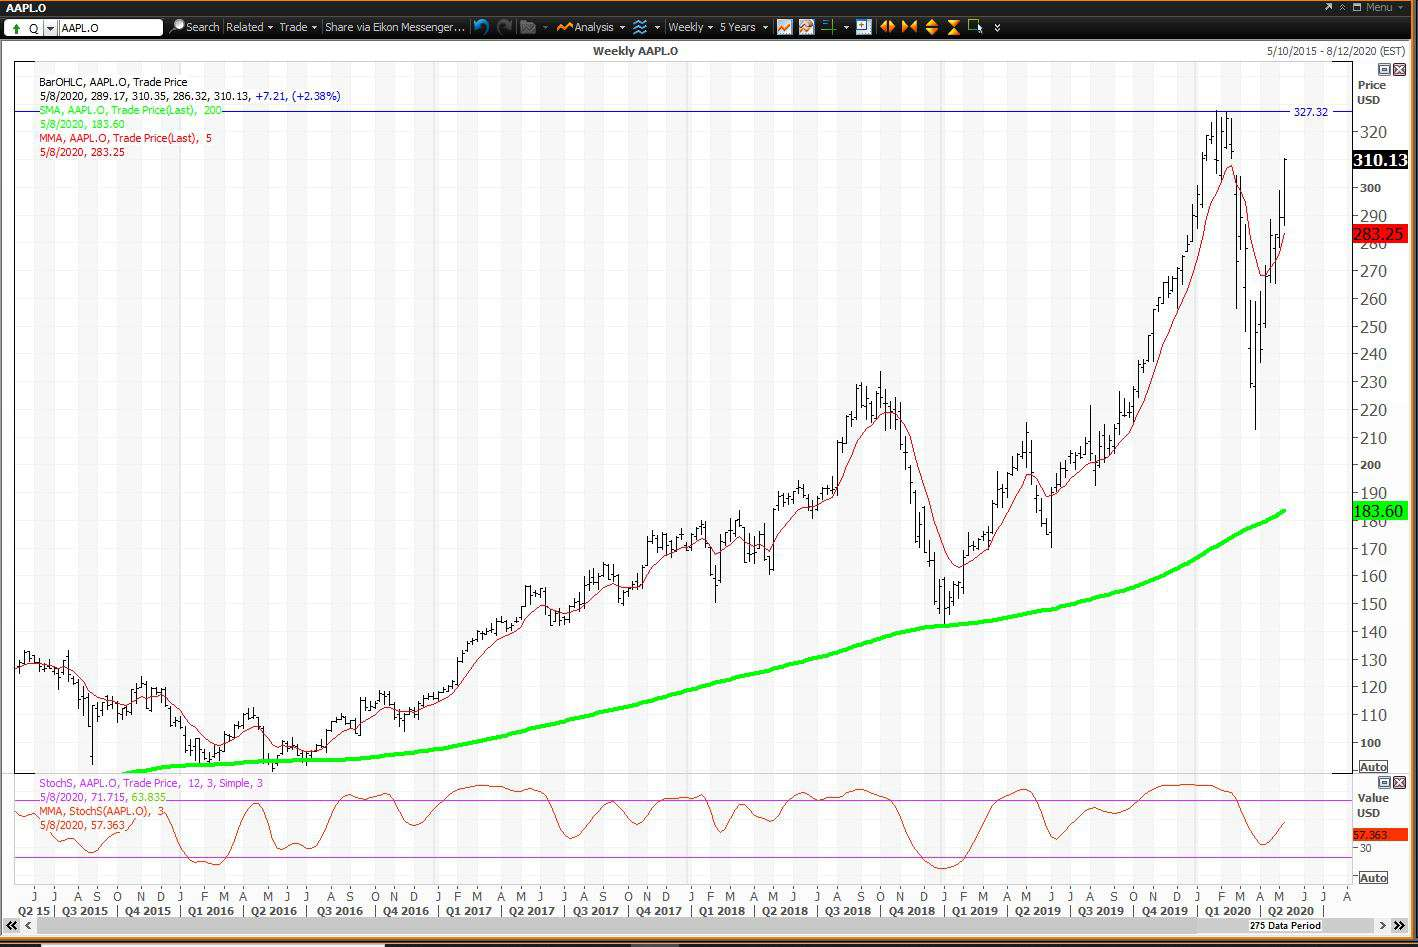 Weekly chart showing the share price performance of Apple Inc. (AAPL)